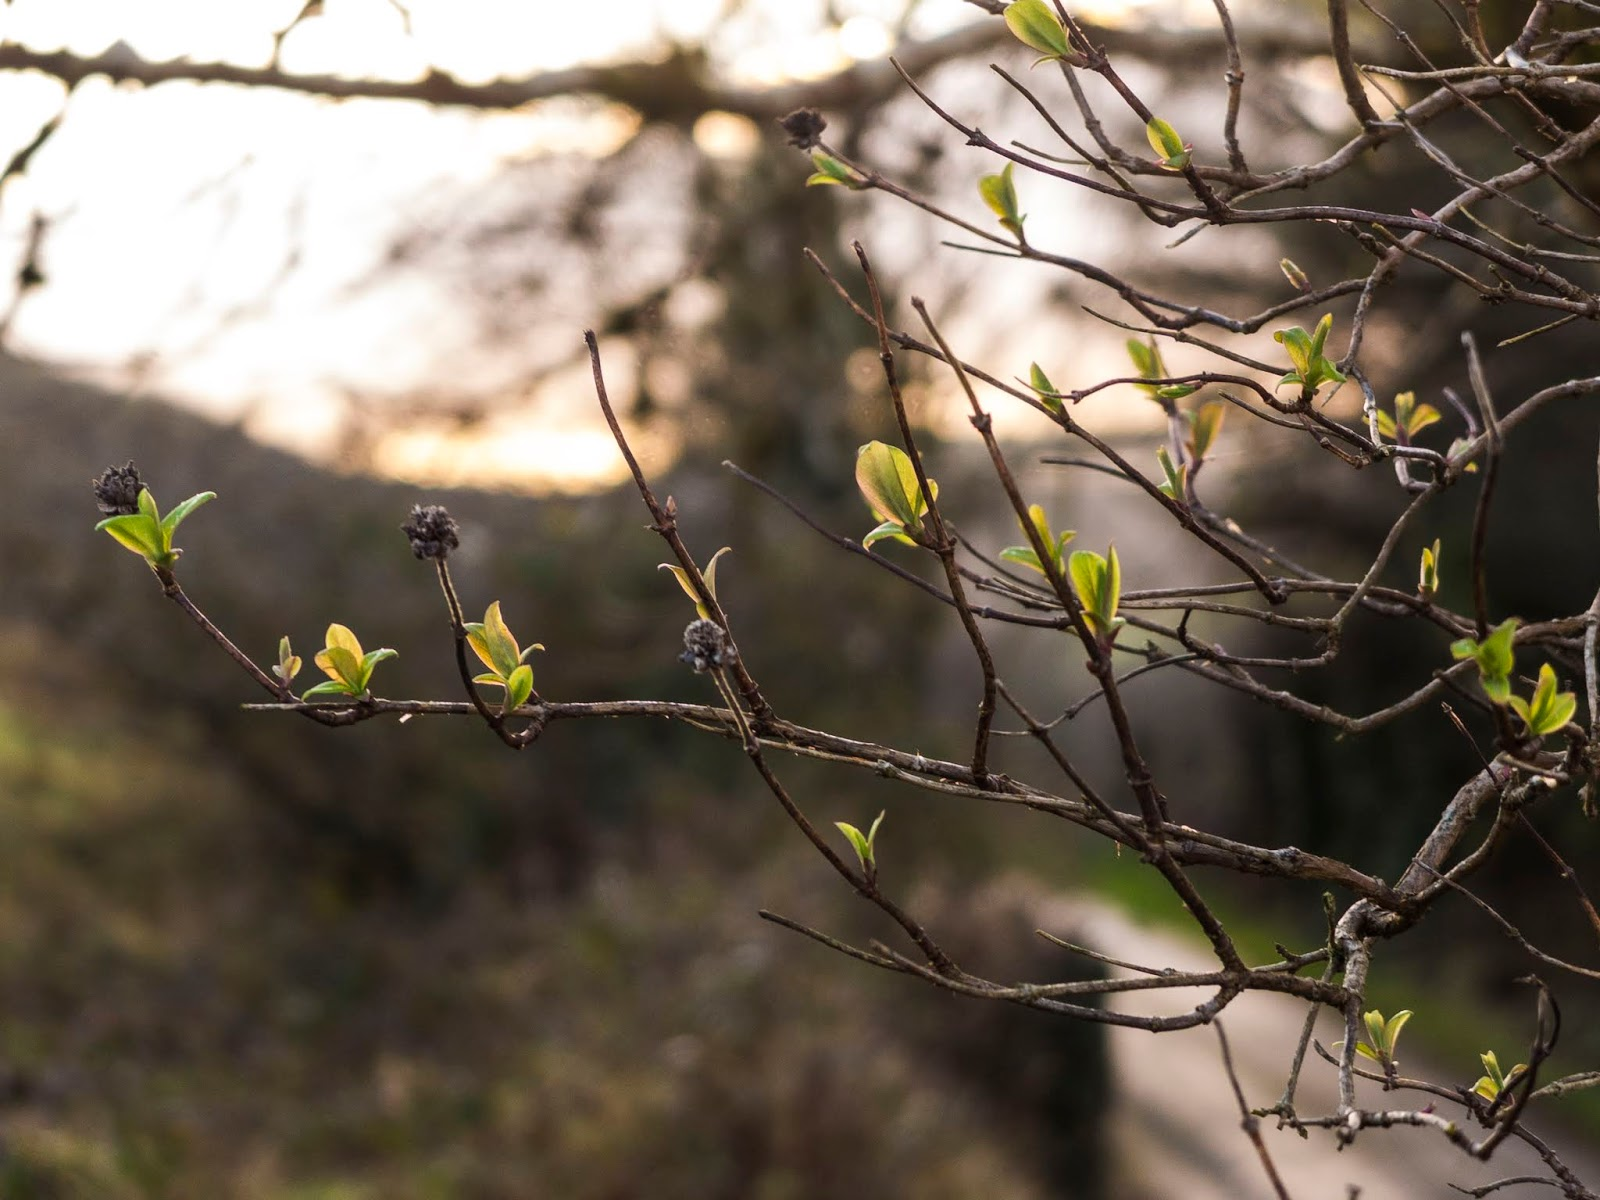 Little leaves emerging on a tree at sunset.